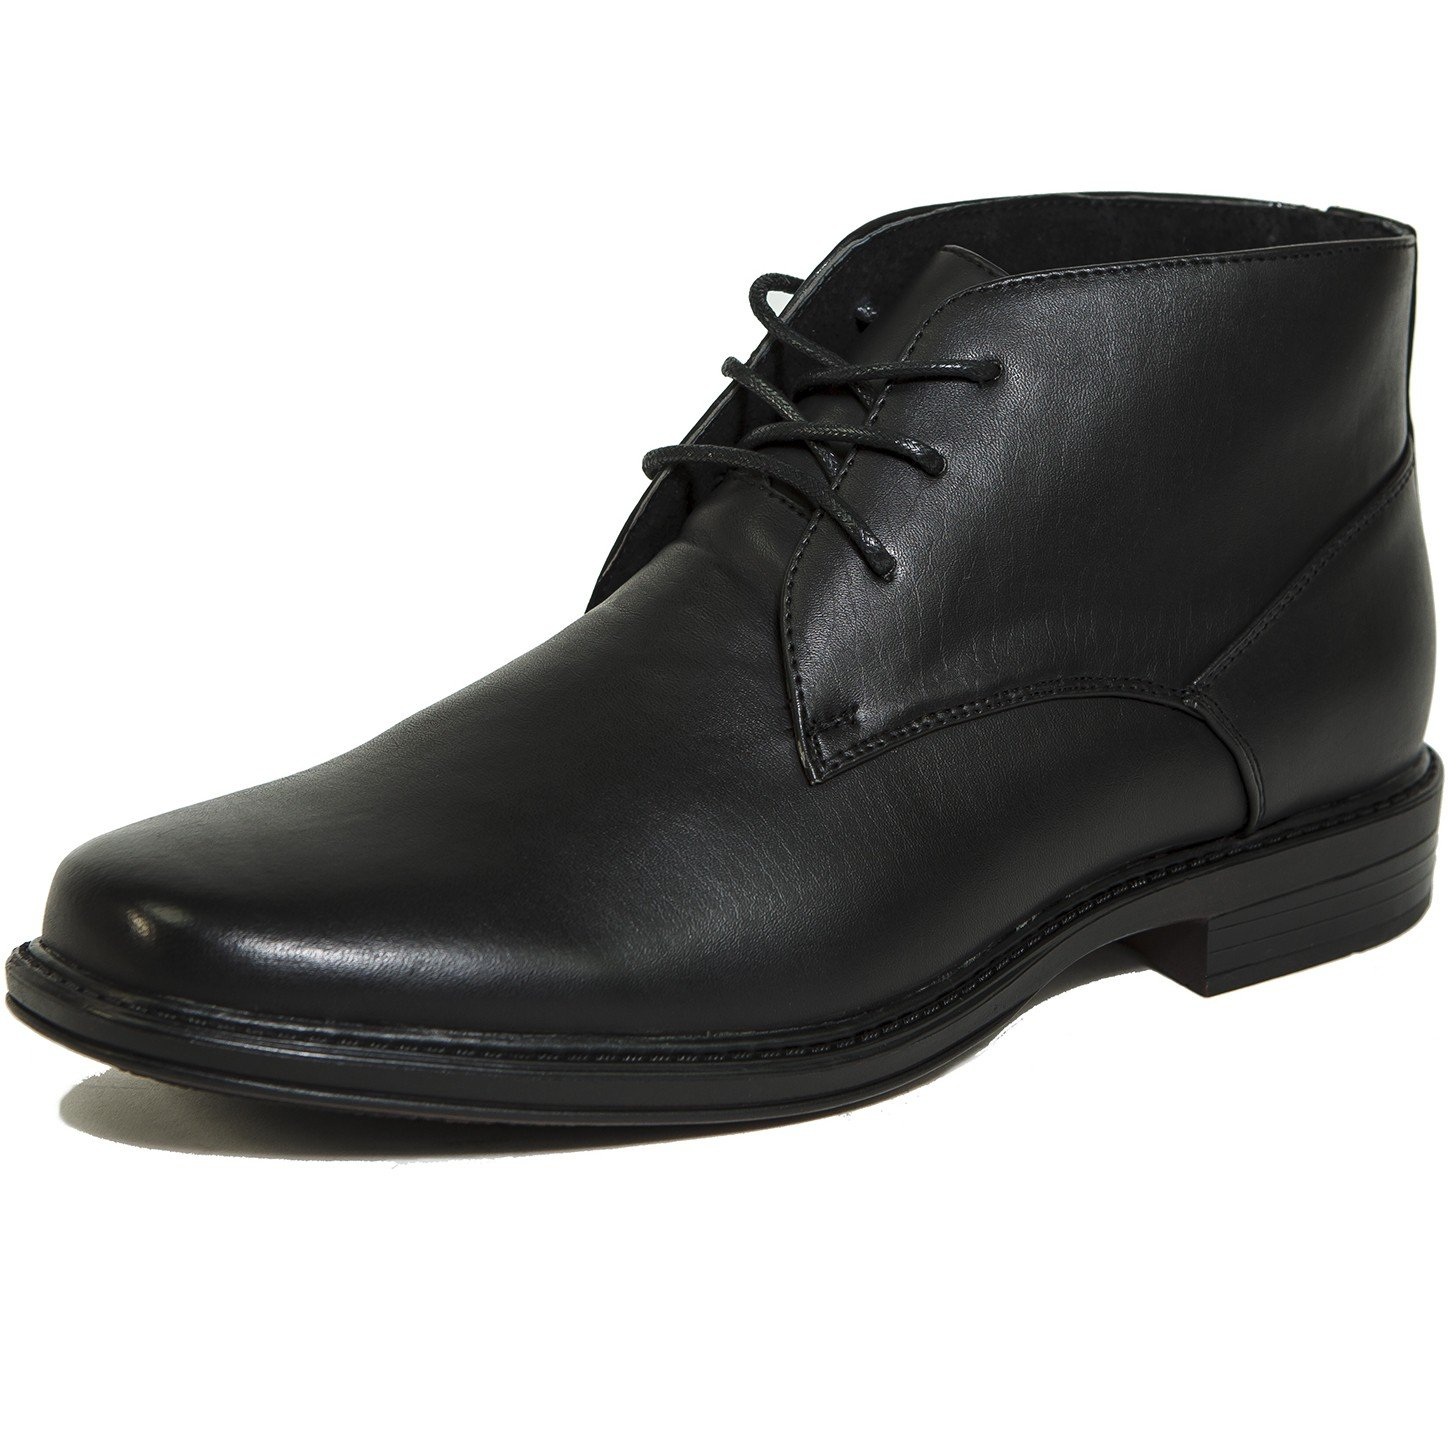 alpine swiss Men's Black Leather Lined Dressy Ankle Boots 13 M US